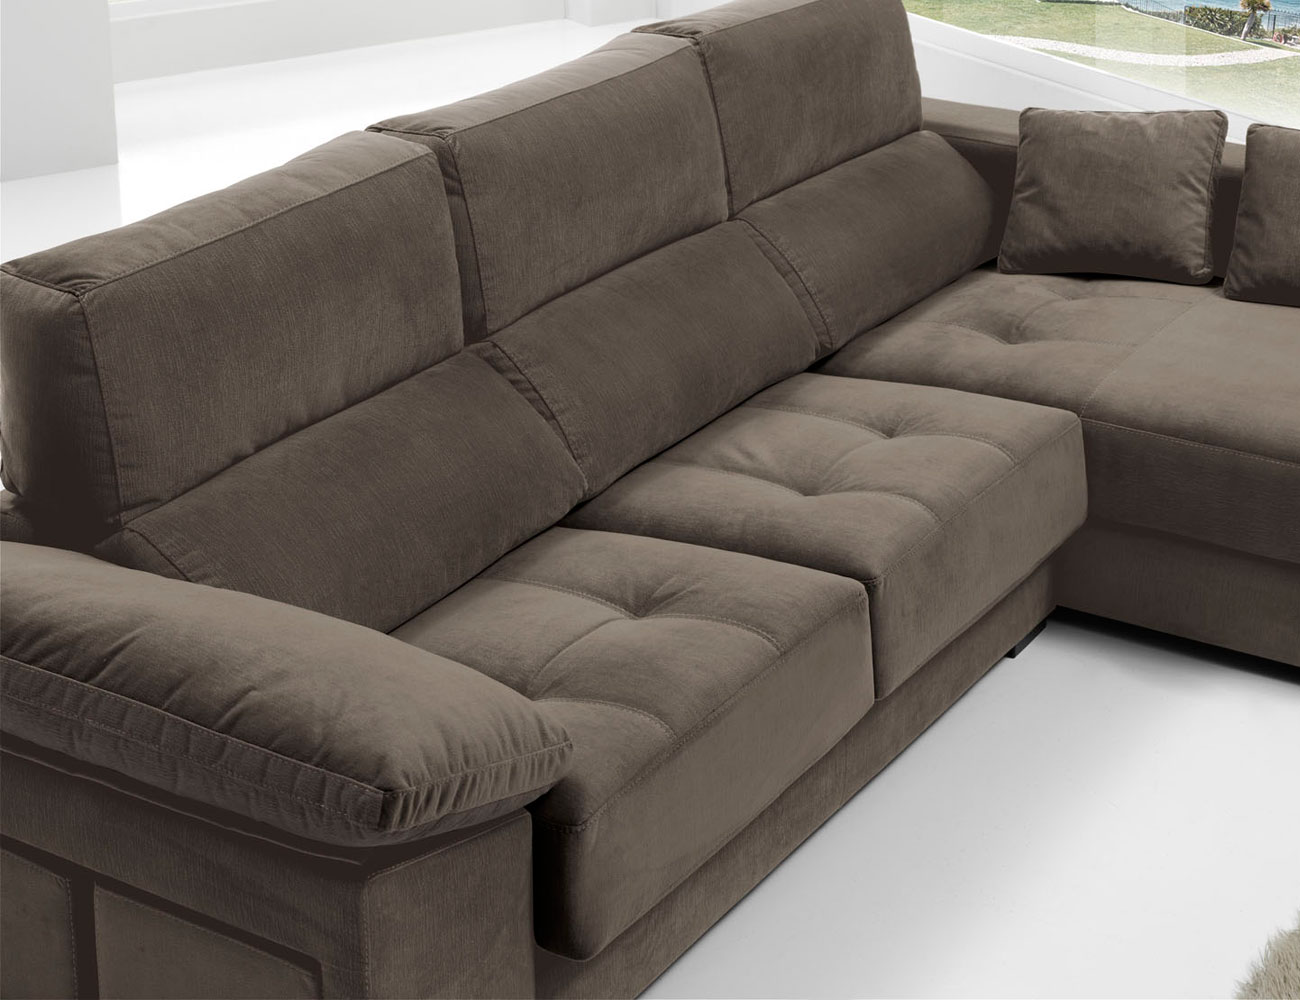 Sofa chaiselongue anti manchas bering pouf 29